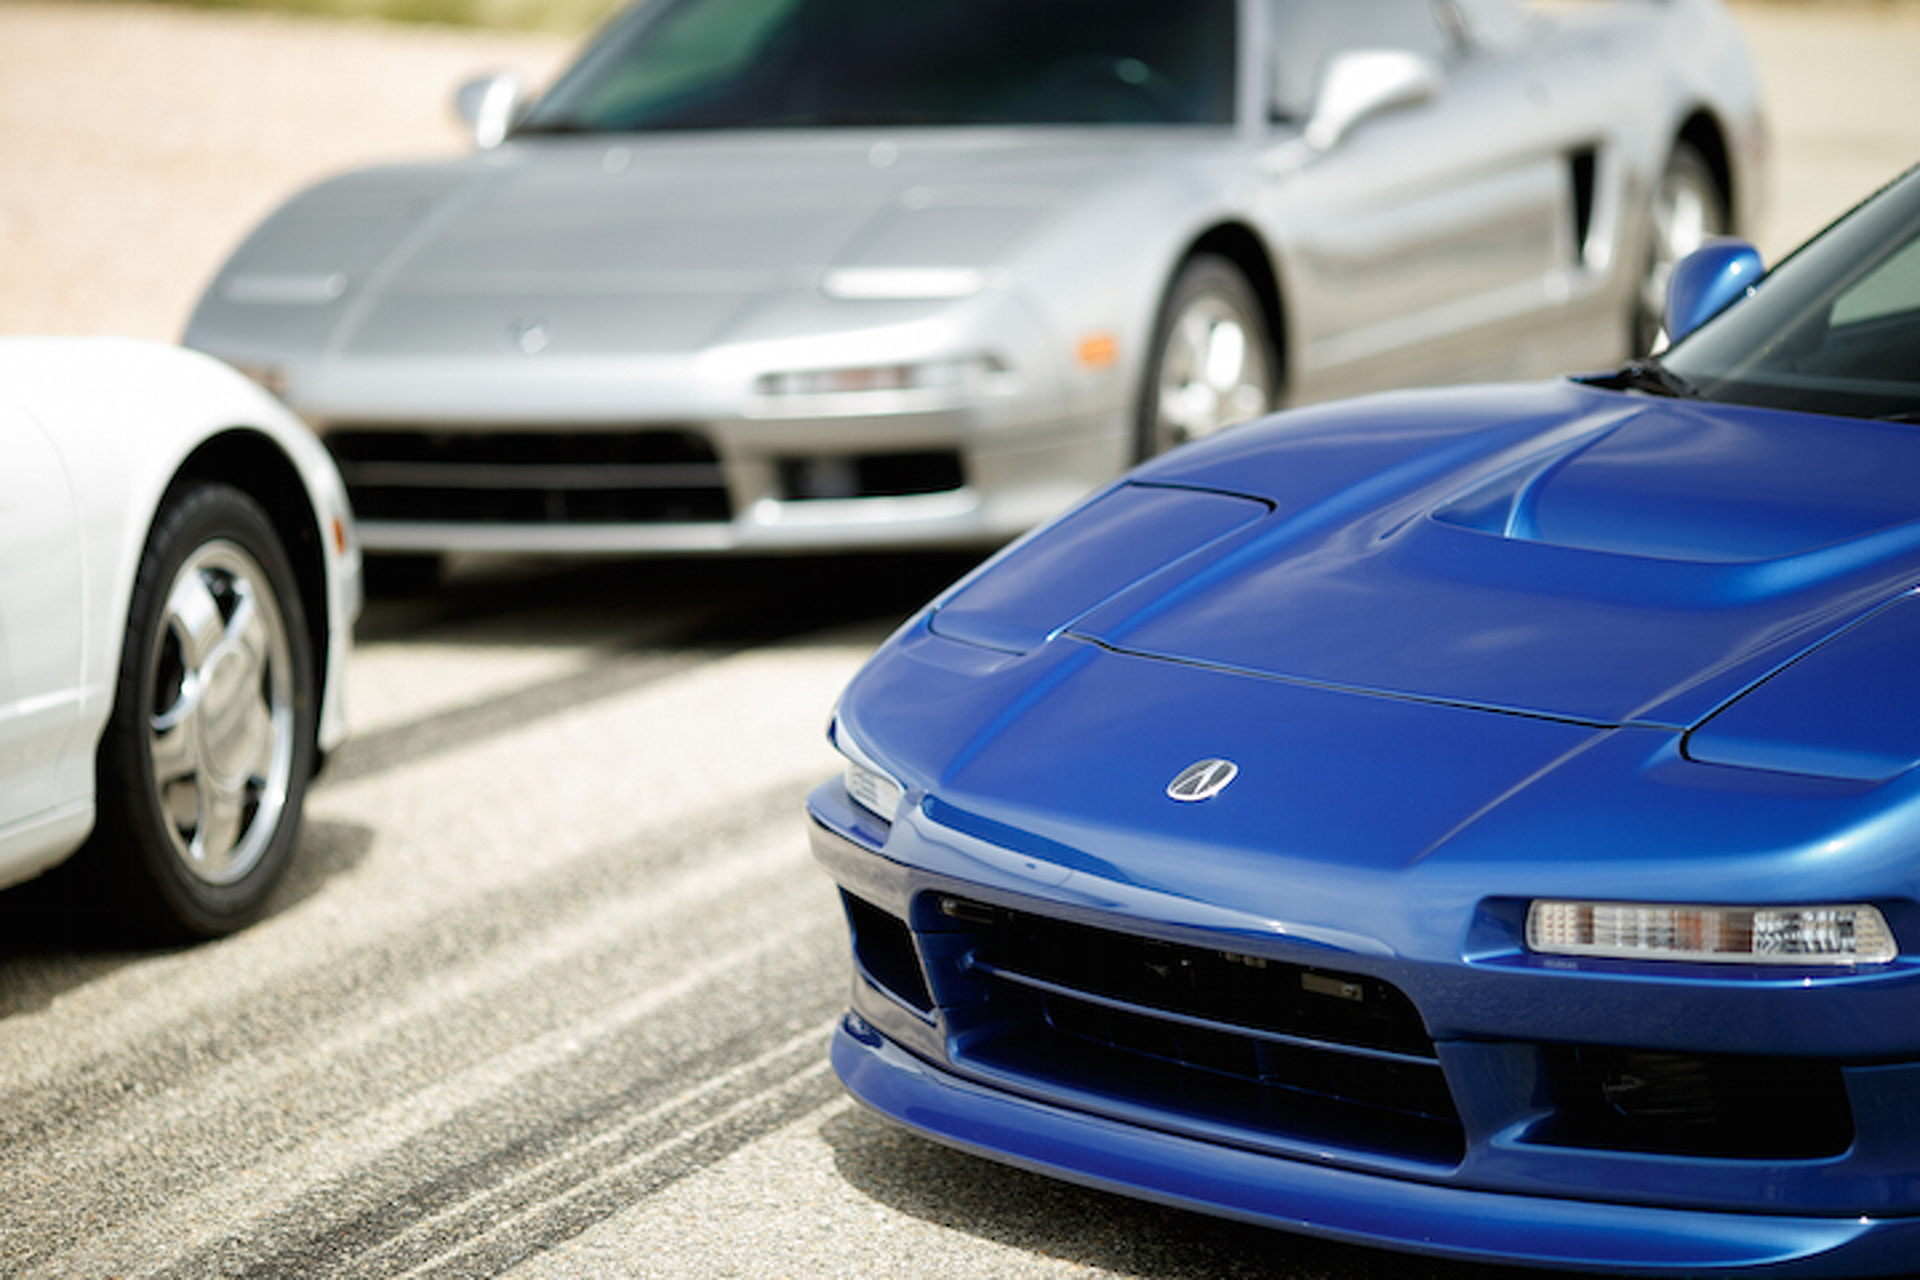 Attacking the Track in a Supercharged 1991 Acura NSX